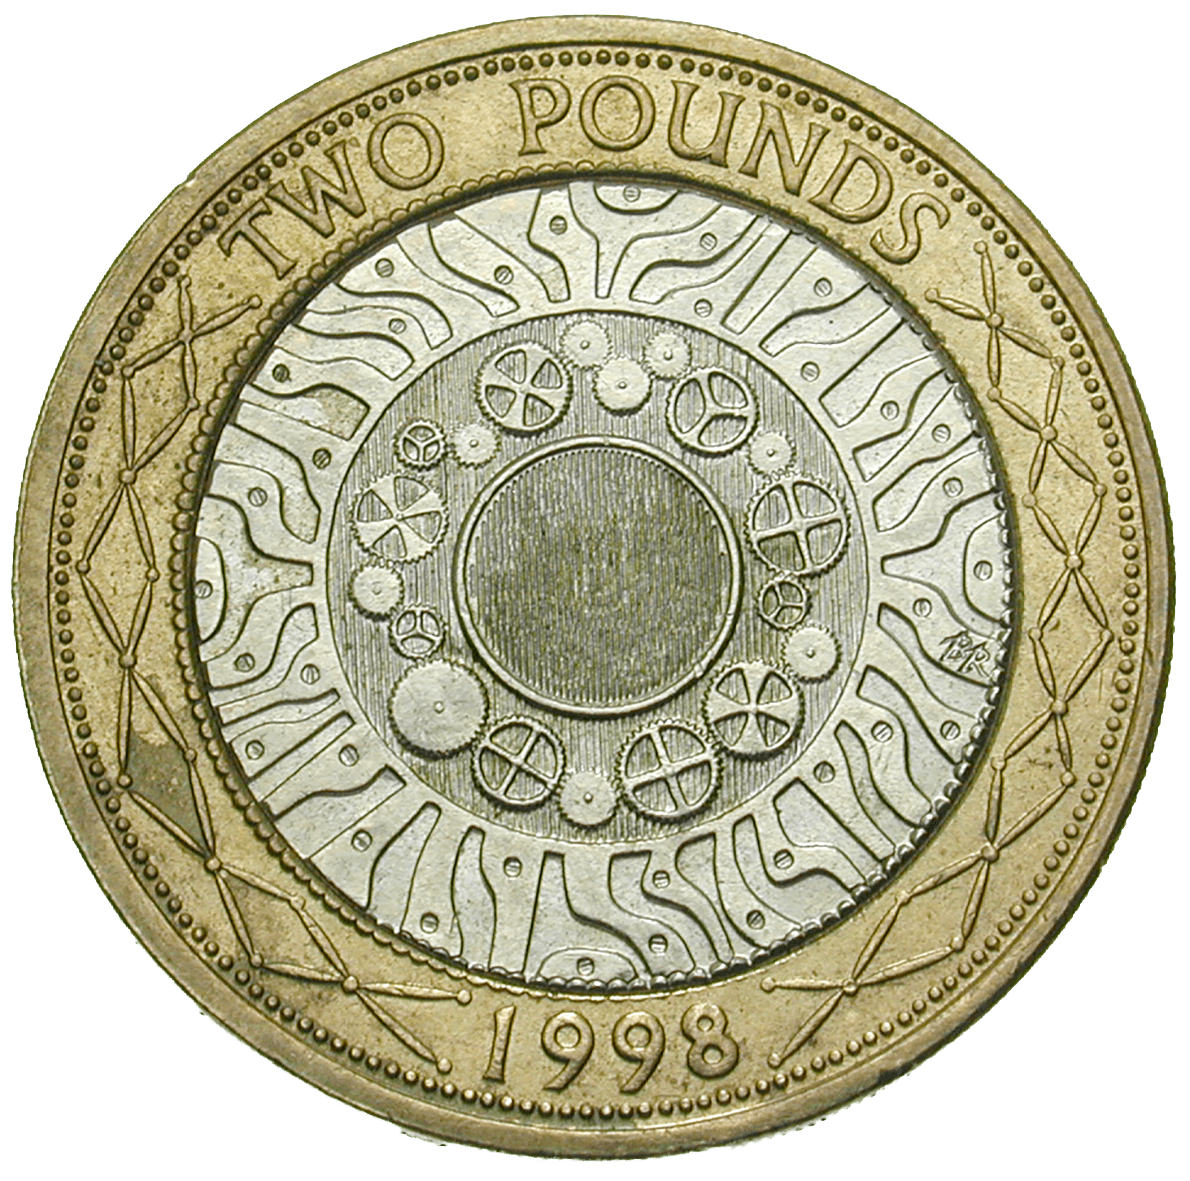 United Kingdom of Great Britain, Elizabeth II, 2 Pounds 1998 (reverse)